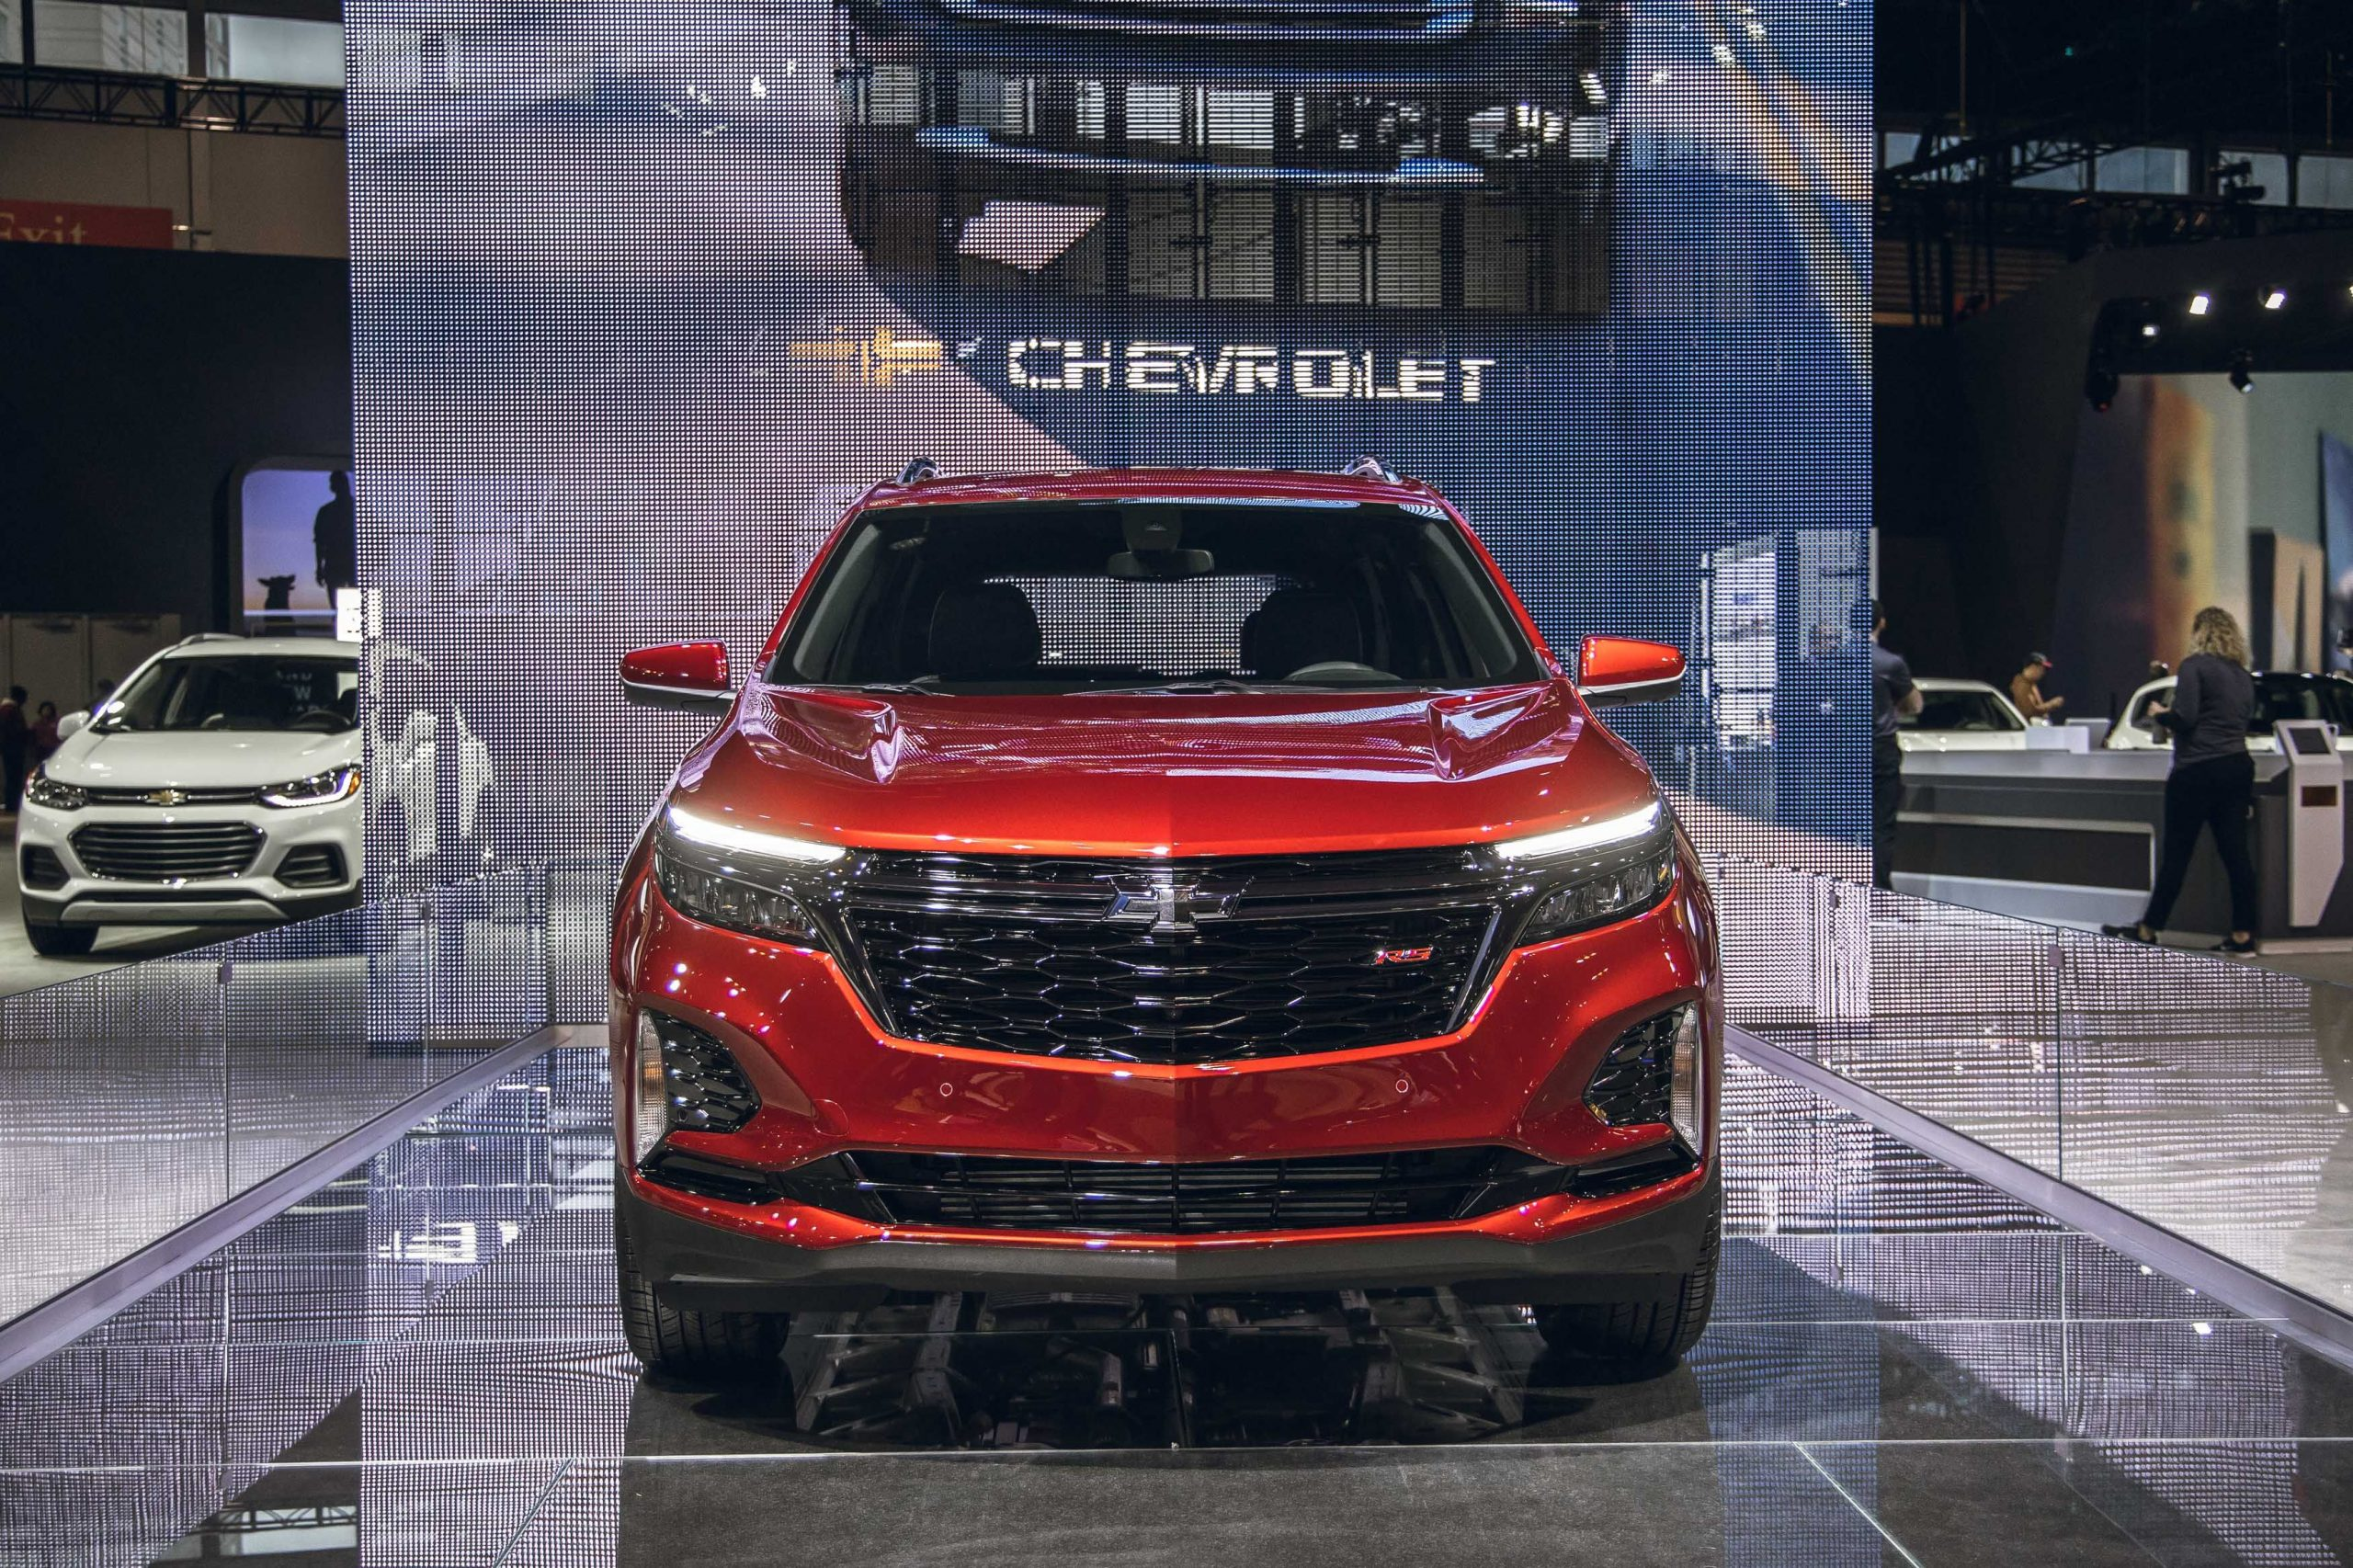 Chevy's Popular Equinox Gets Rs Trim, Updated Appearance For 2022 Chevy Blazer Rs Start Up, Tires, Trim